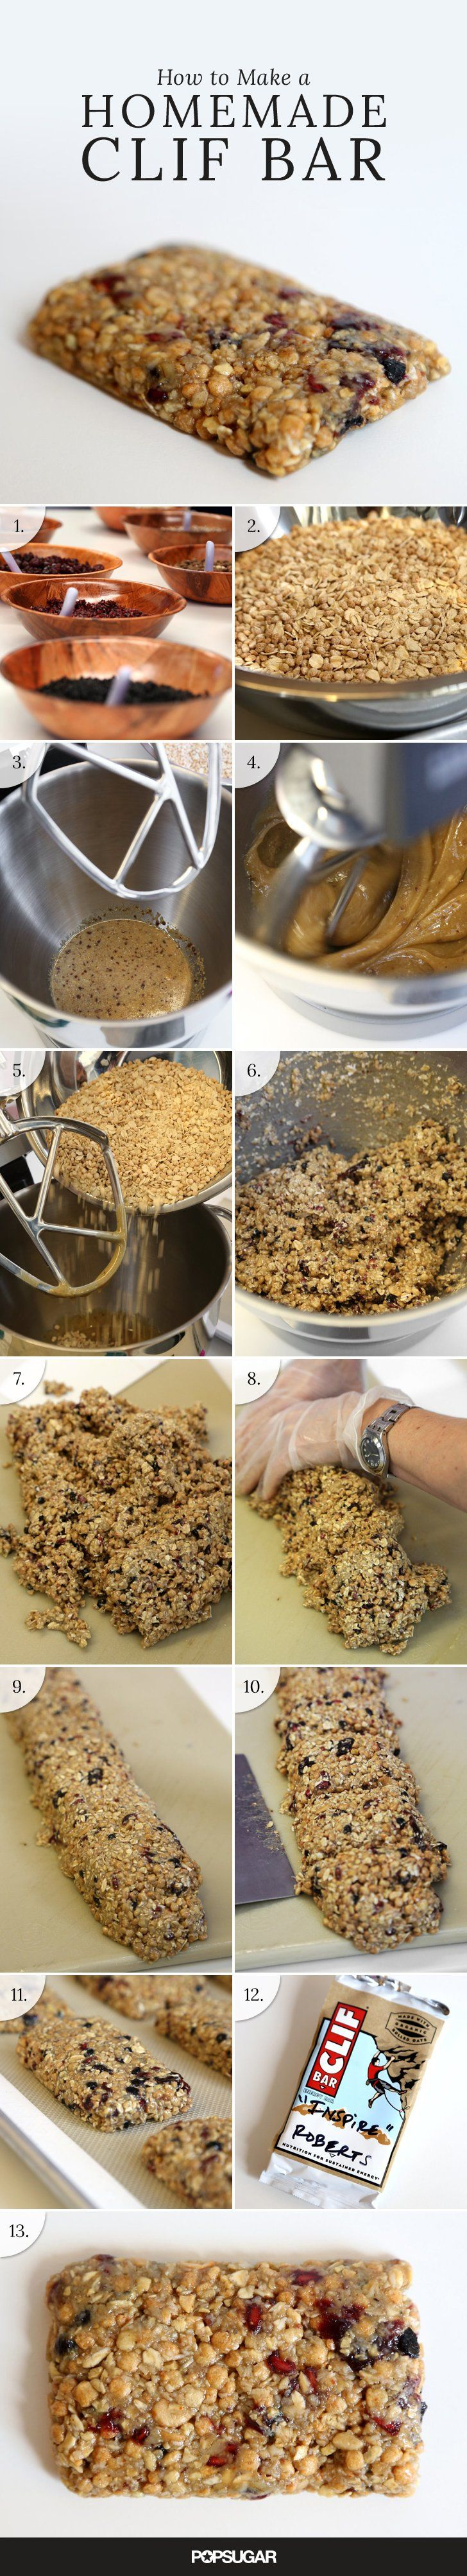 Ever wondered how to make a homemade Clif Bar? The company shares its secrets!